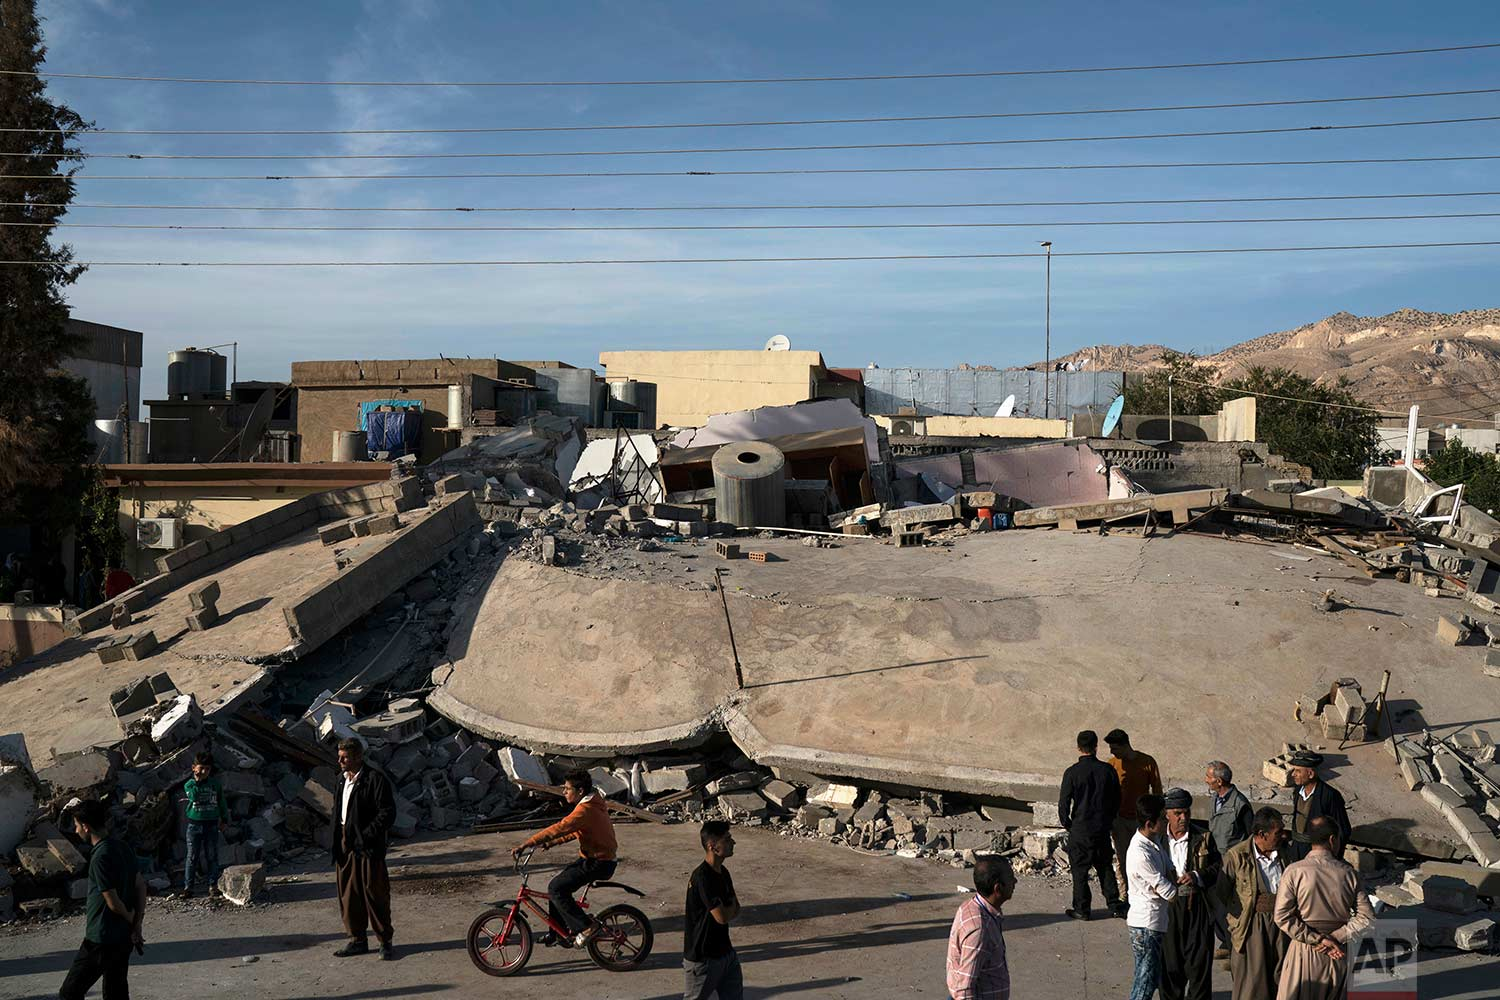 People walk next to a destroyed building after an earthquake in the city of Darbandikhan, northern Iraq, Monday, Nov. 13, 2017. (AP Photo/Felipe Dana)